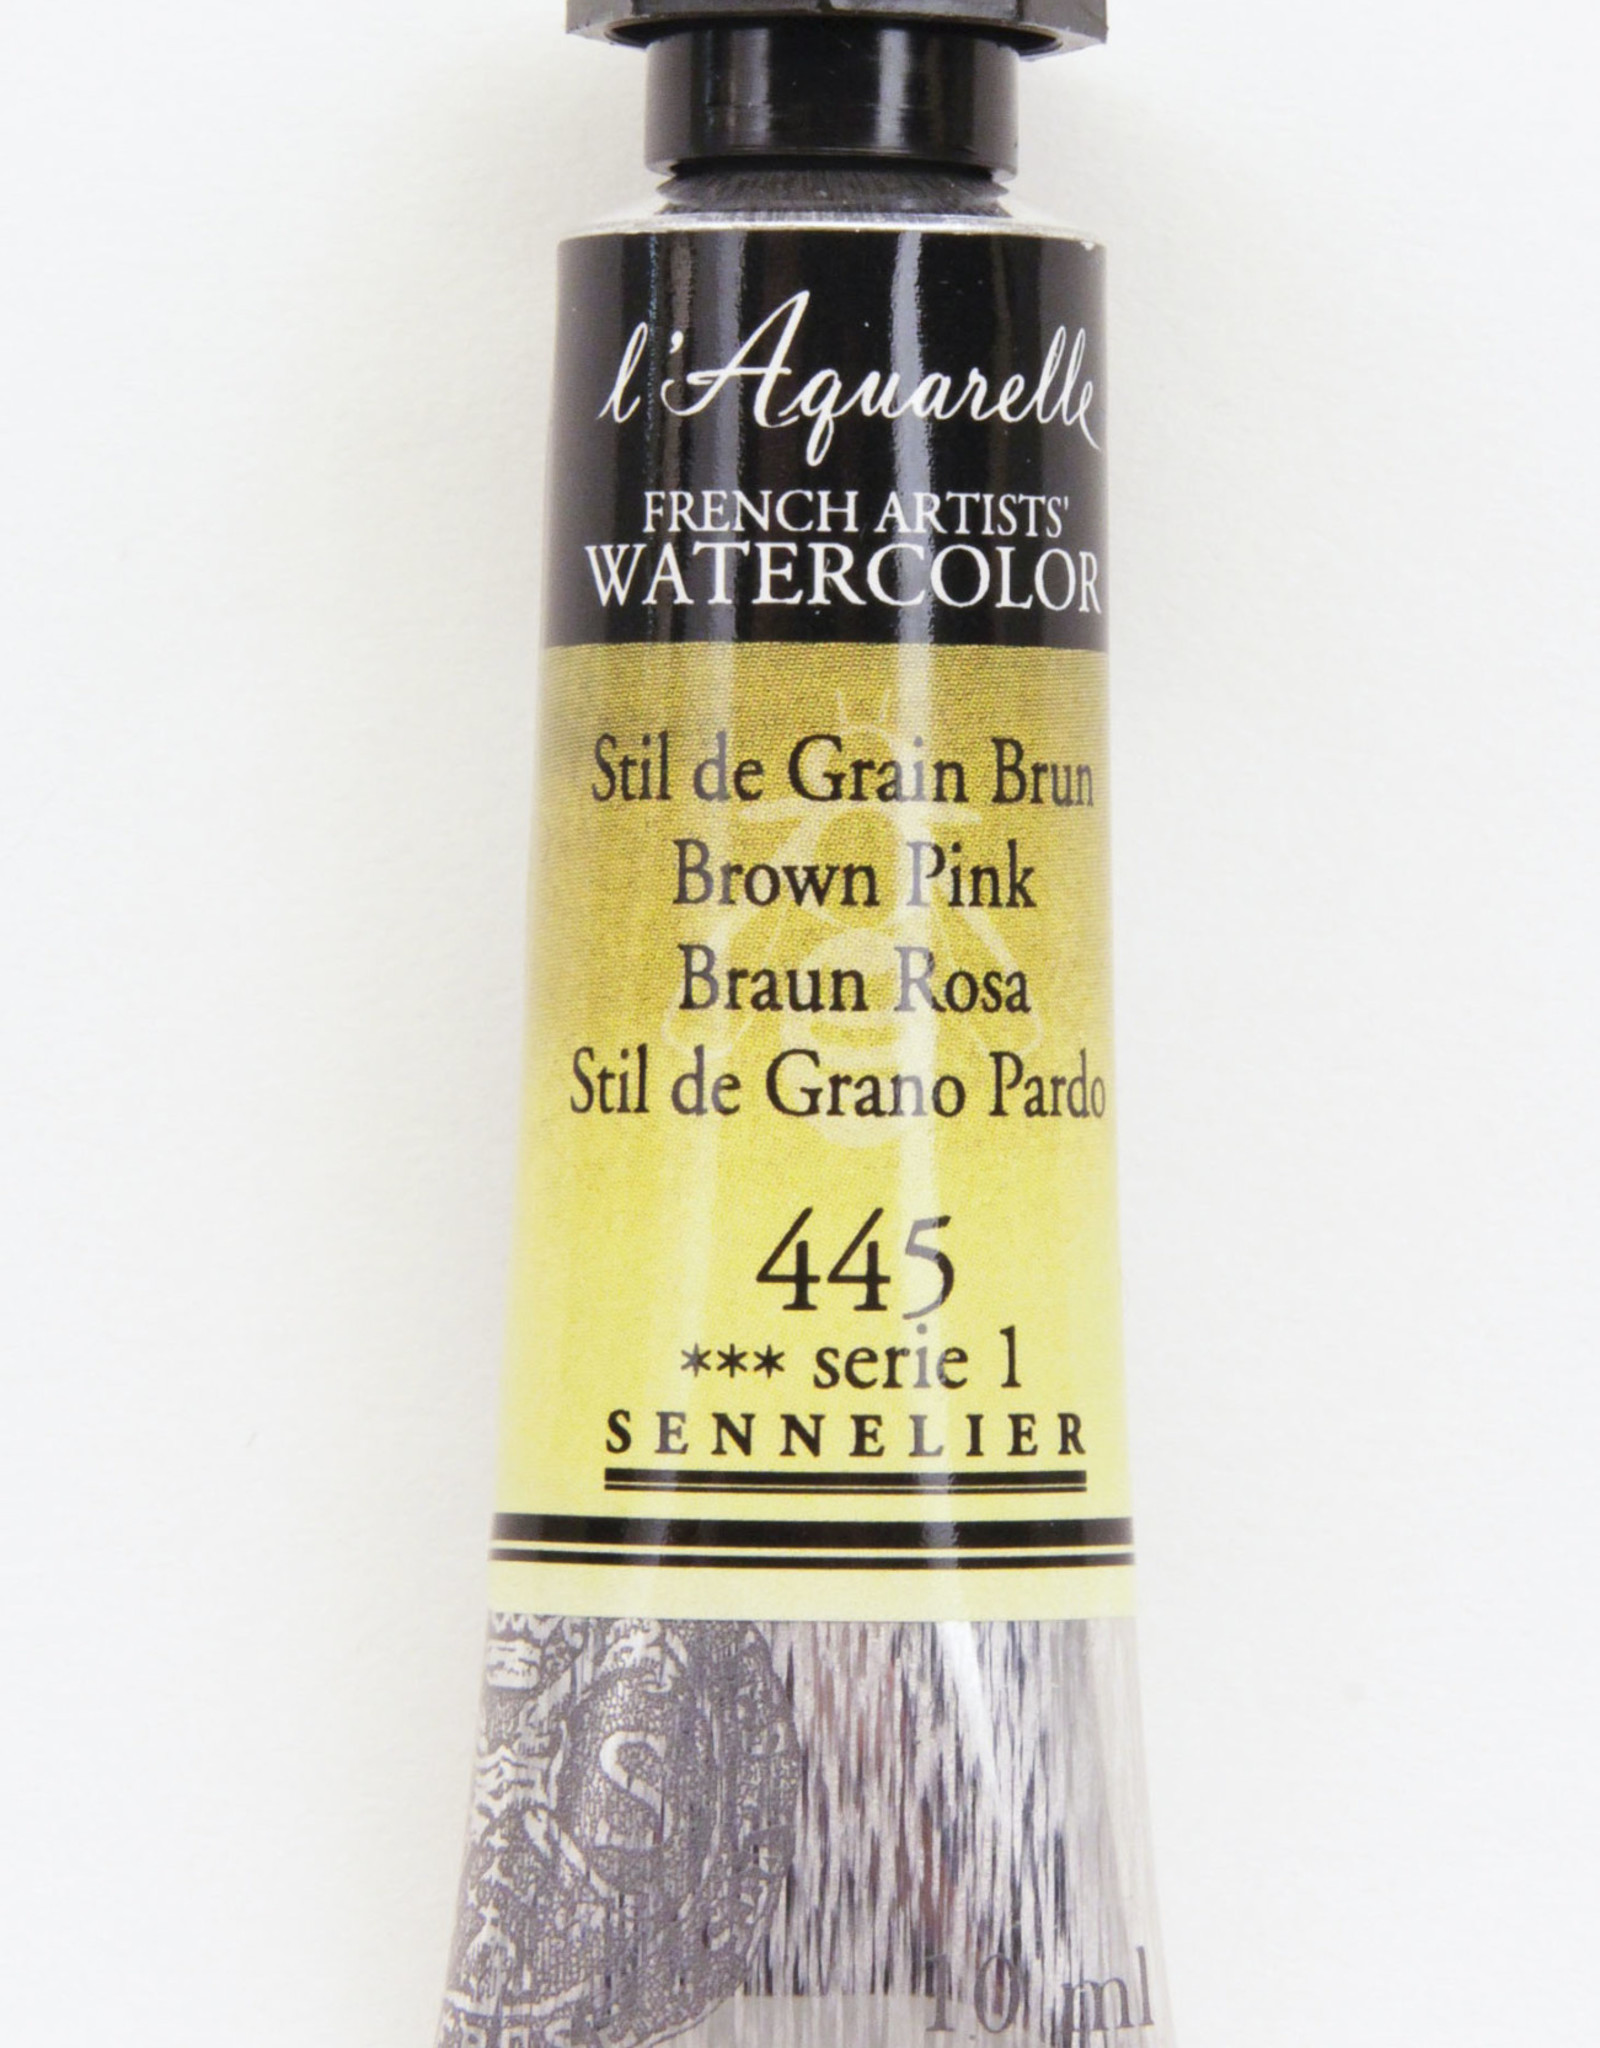 Sennelier, Aquarelle Watercolor Paint, Brown Pink, 445,10ml Tube, Series 1